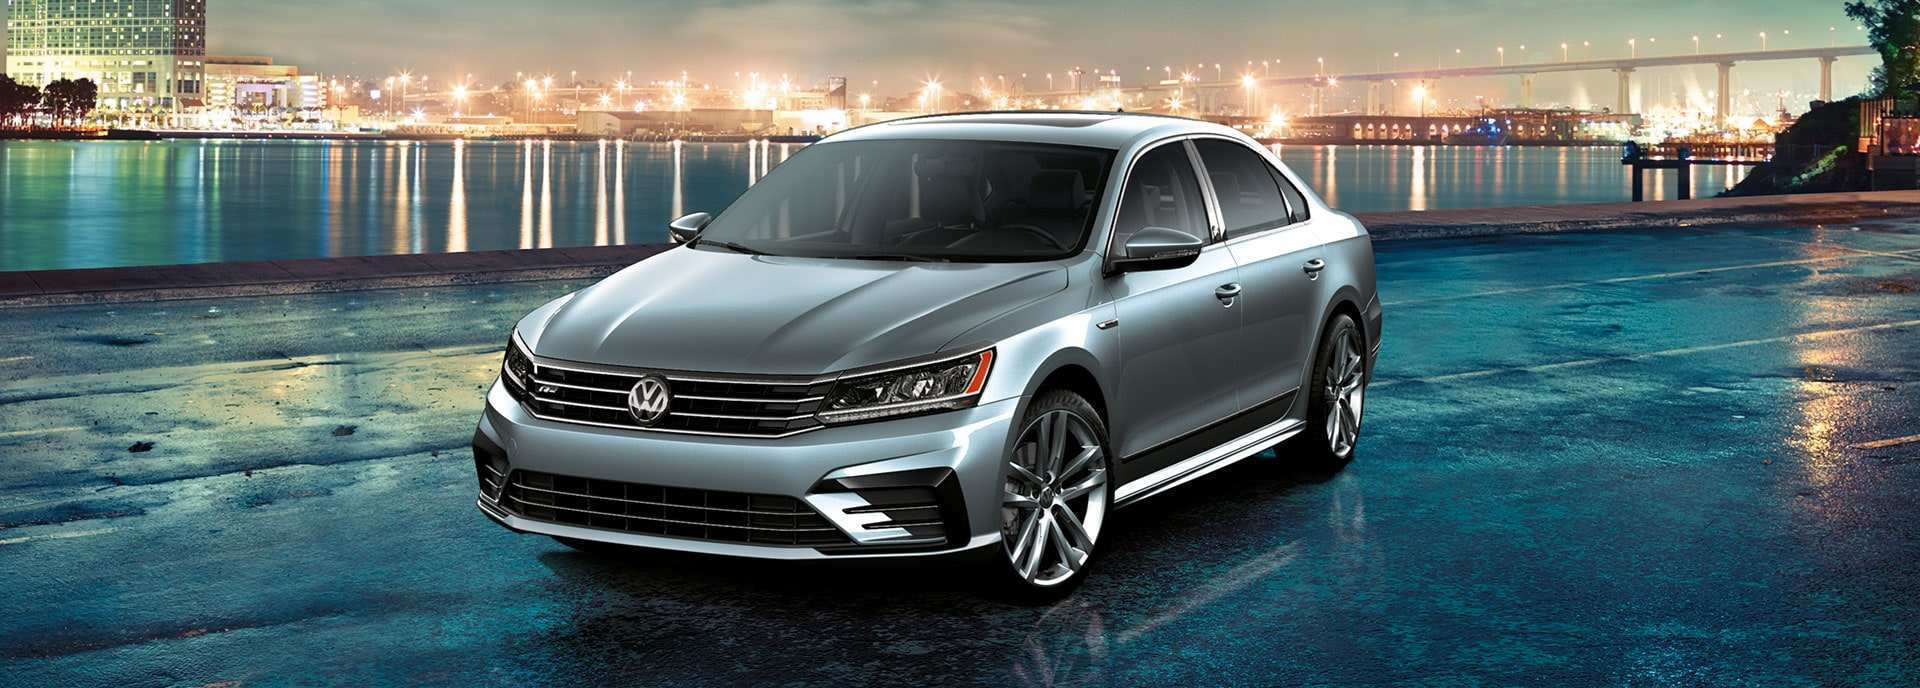 85 All New Best Volkswagen Passat 2019 Release Date Exterior and Interior by Best Volkswagen Passat 2019 Release Date